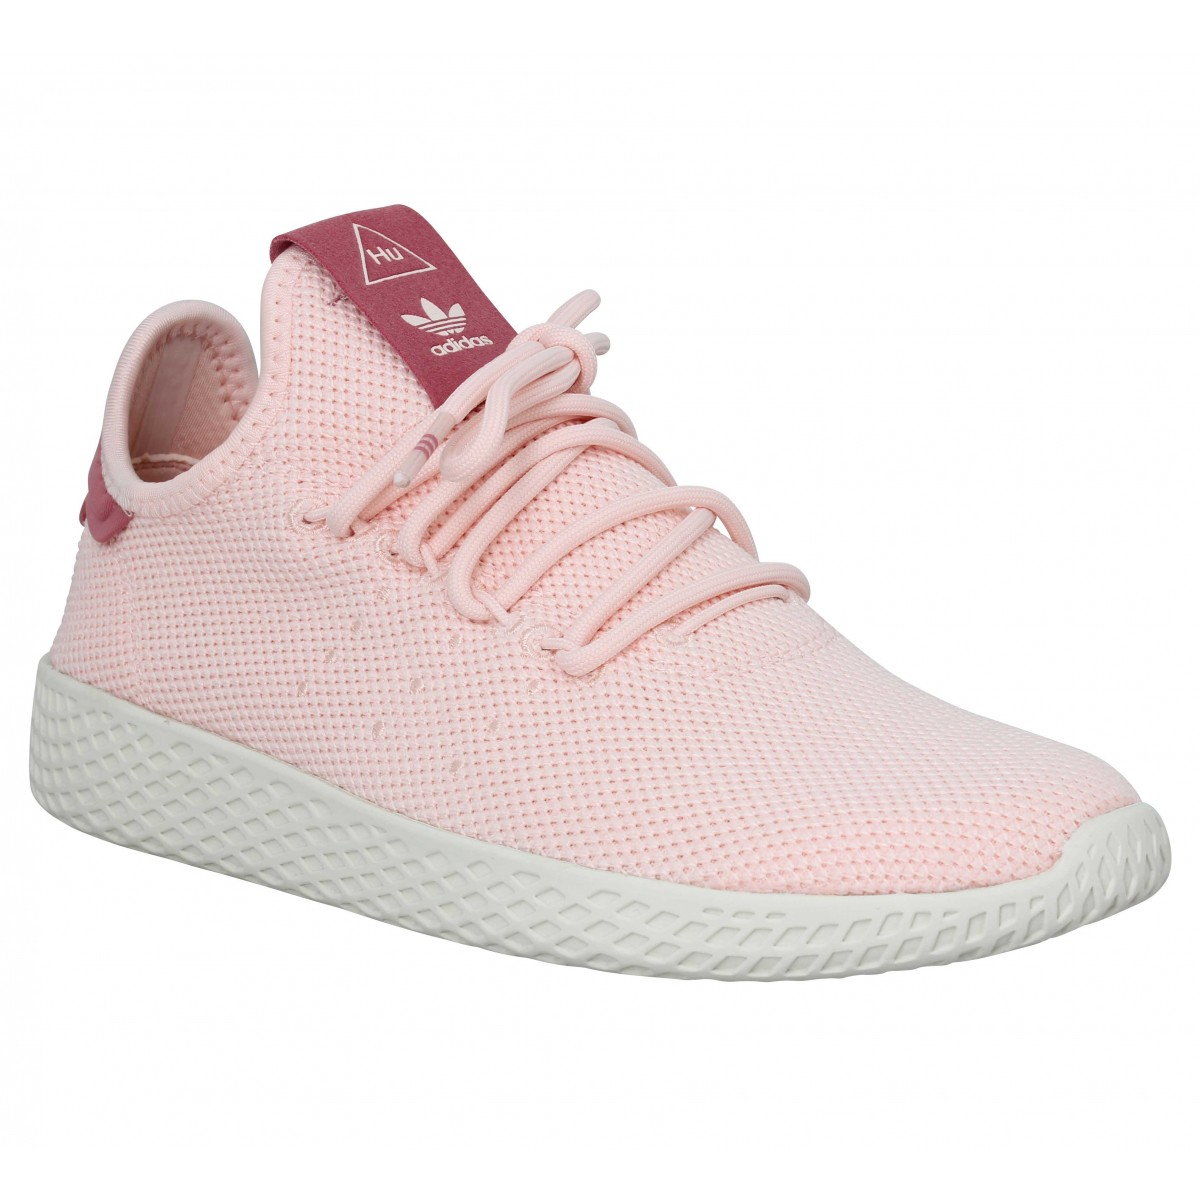 ADIDAS X PHARRELL WILLIAMS PW Tennis mesh Femme Rose